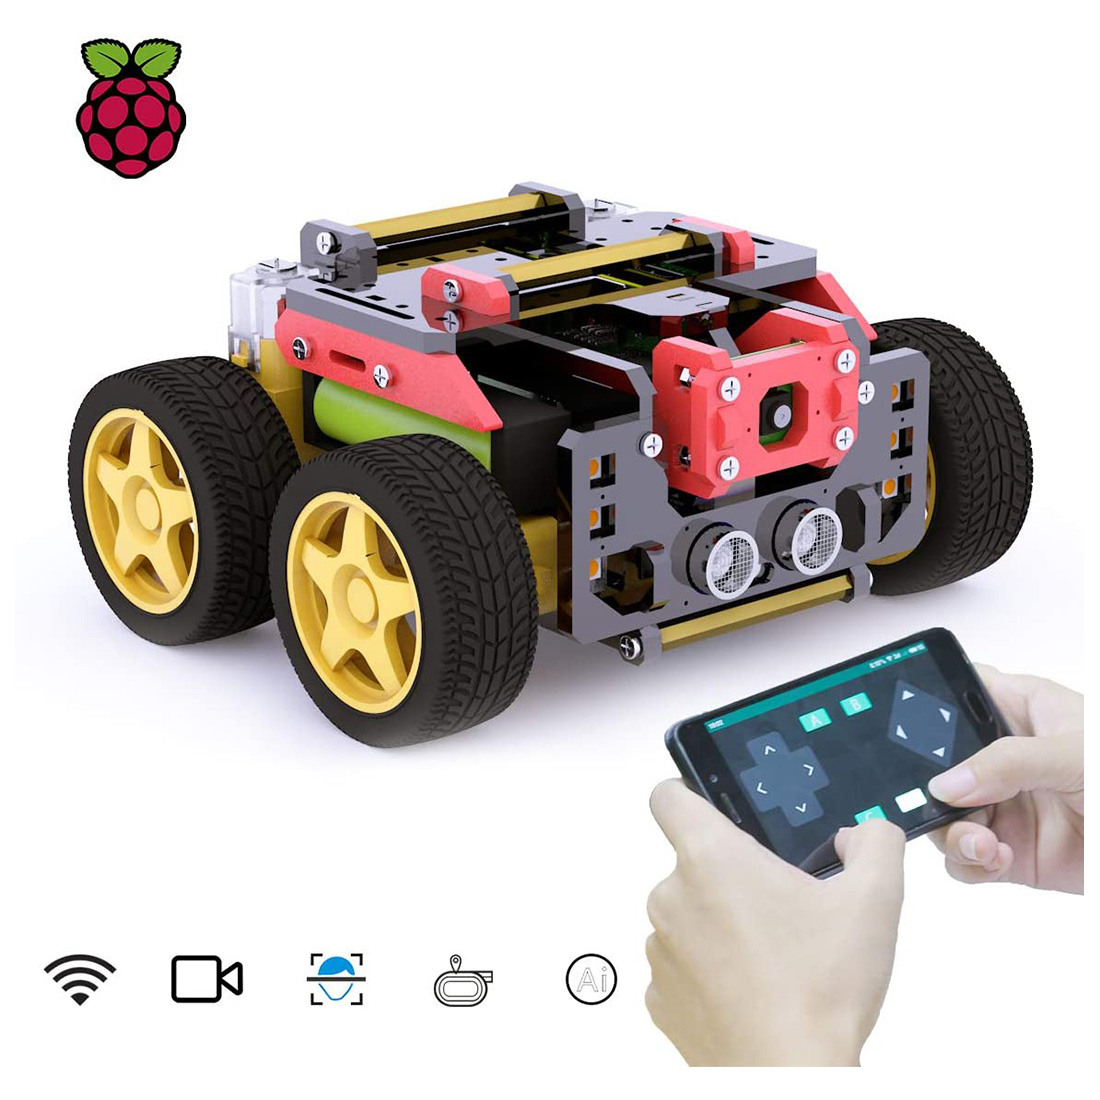 Adeept AWR 4WD WiFi DIY Smart Robot Car Kit with OpenCV Target Track Real-Time Video Transmission for Raspberry Pi4/3 Model B+/B